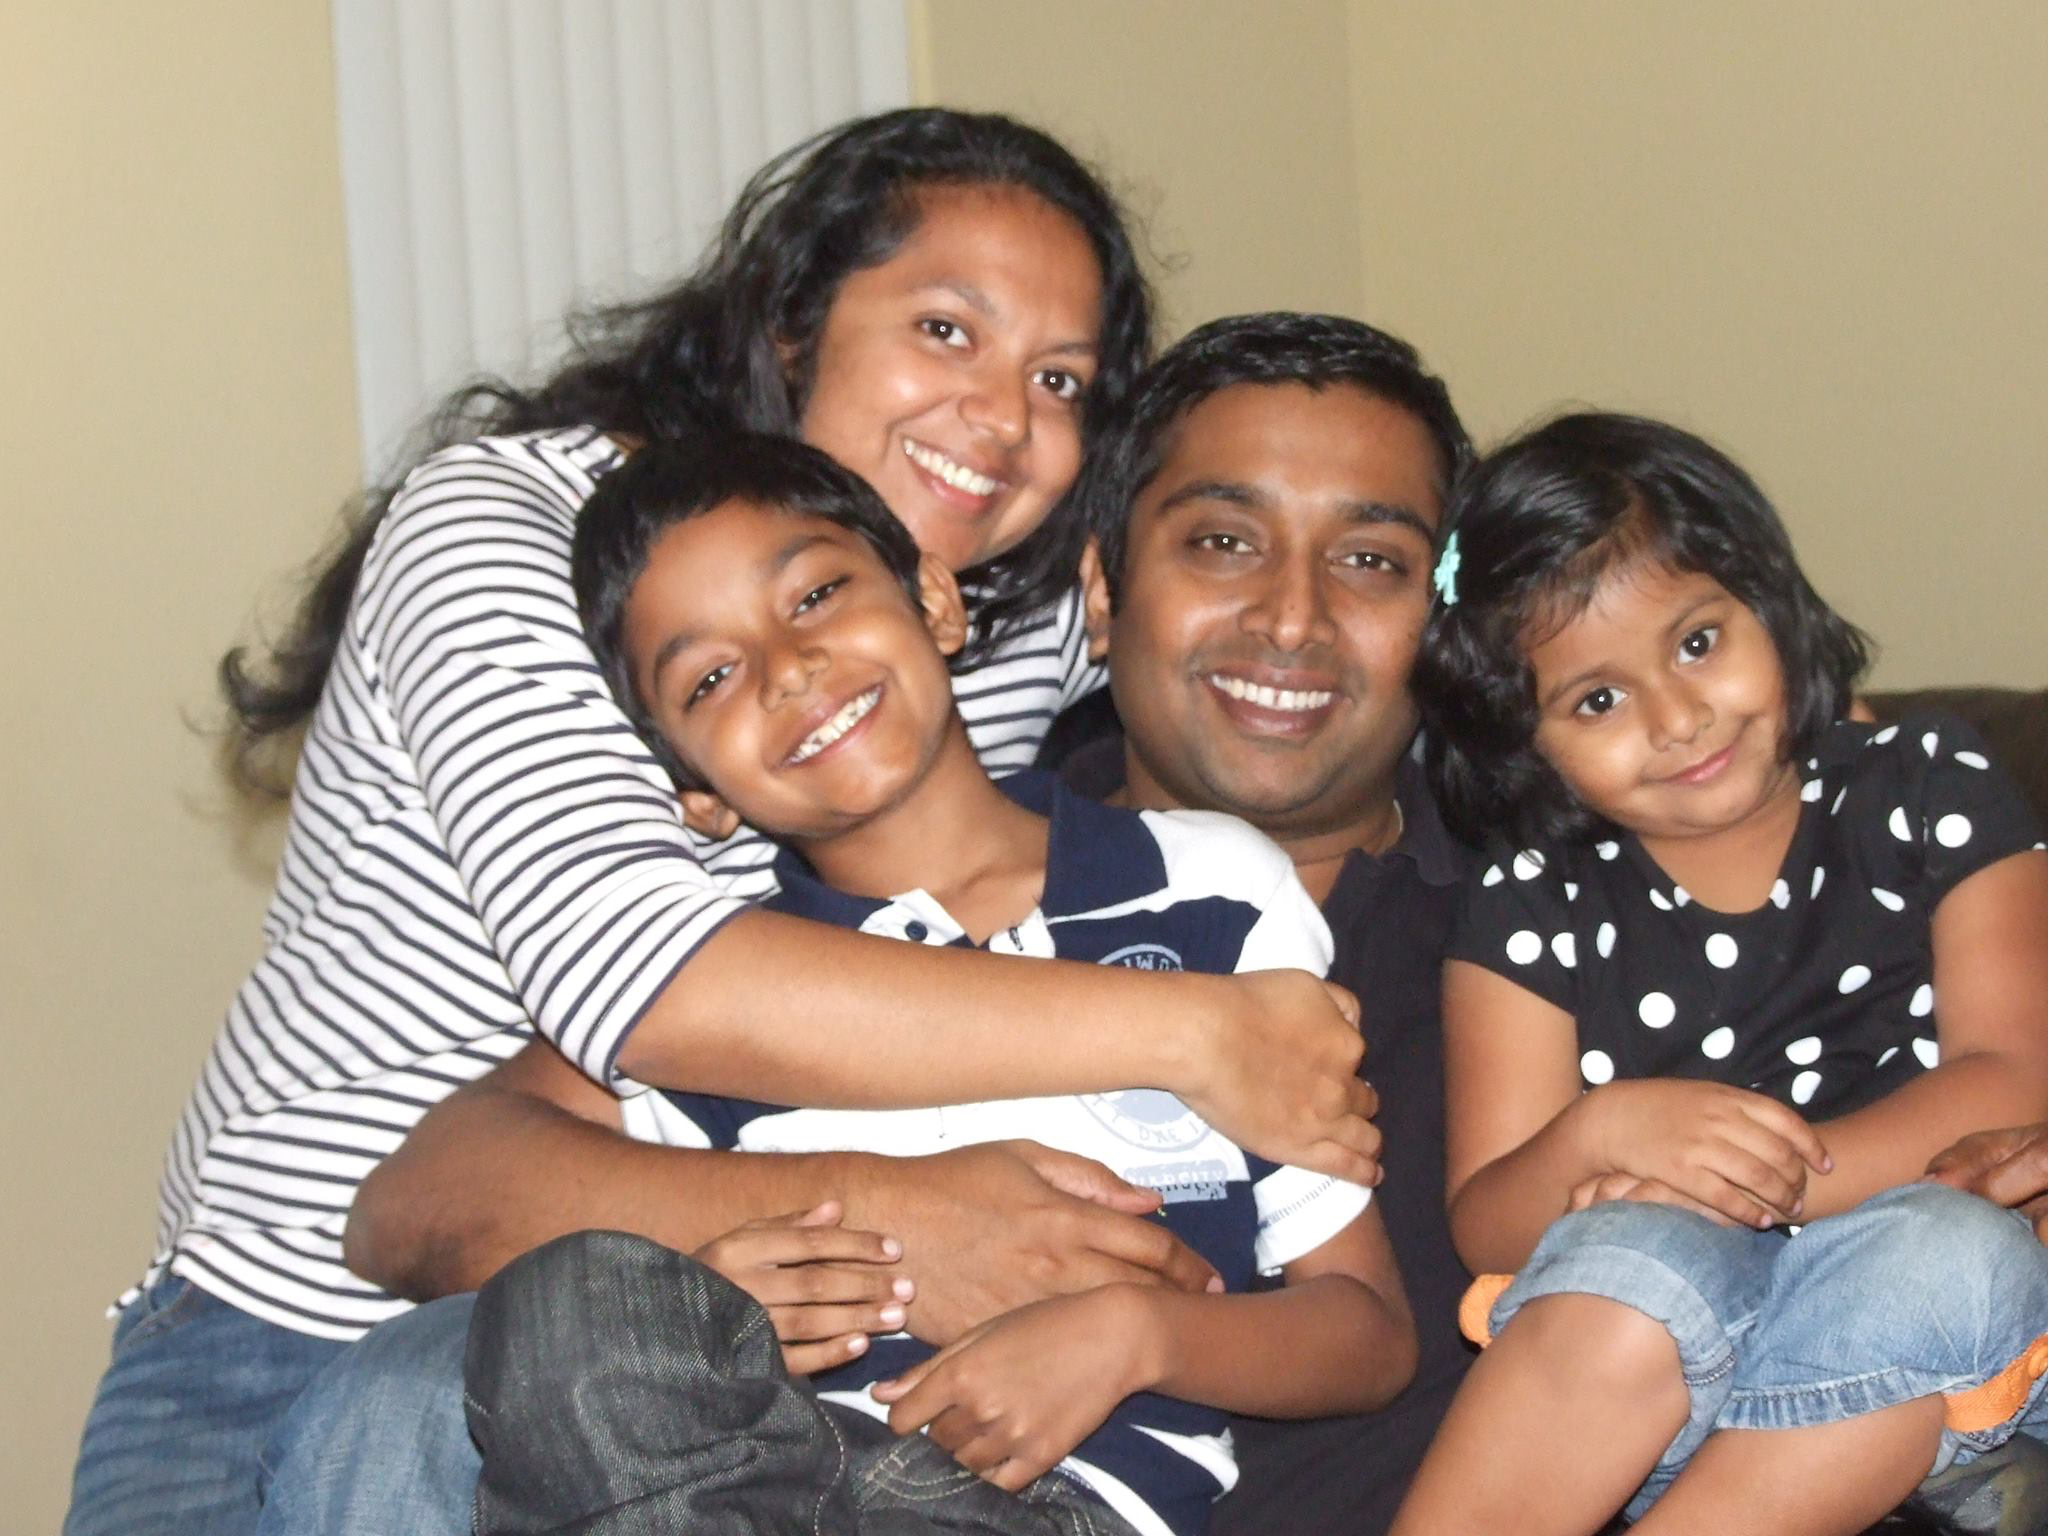 Sandeep Thottapilly and family from Facebook